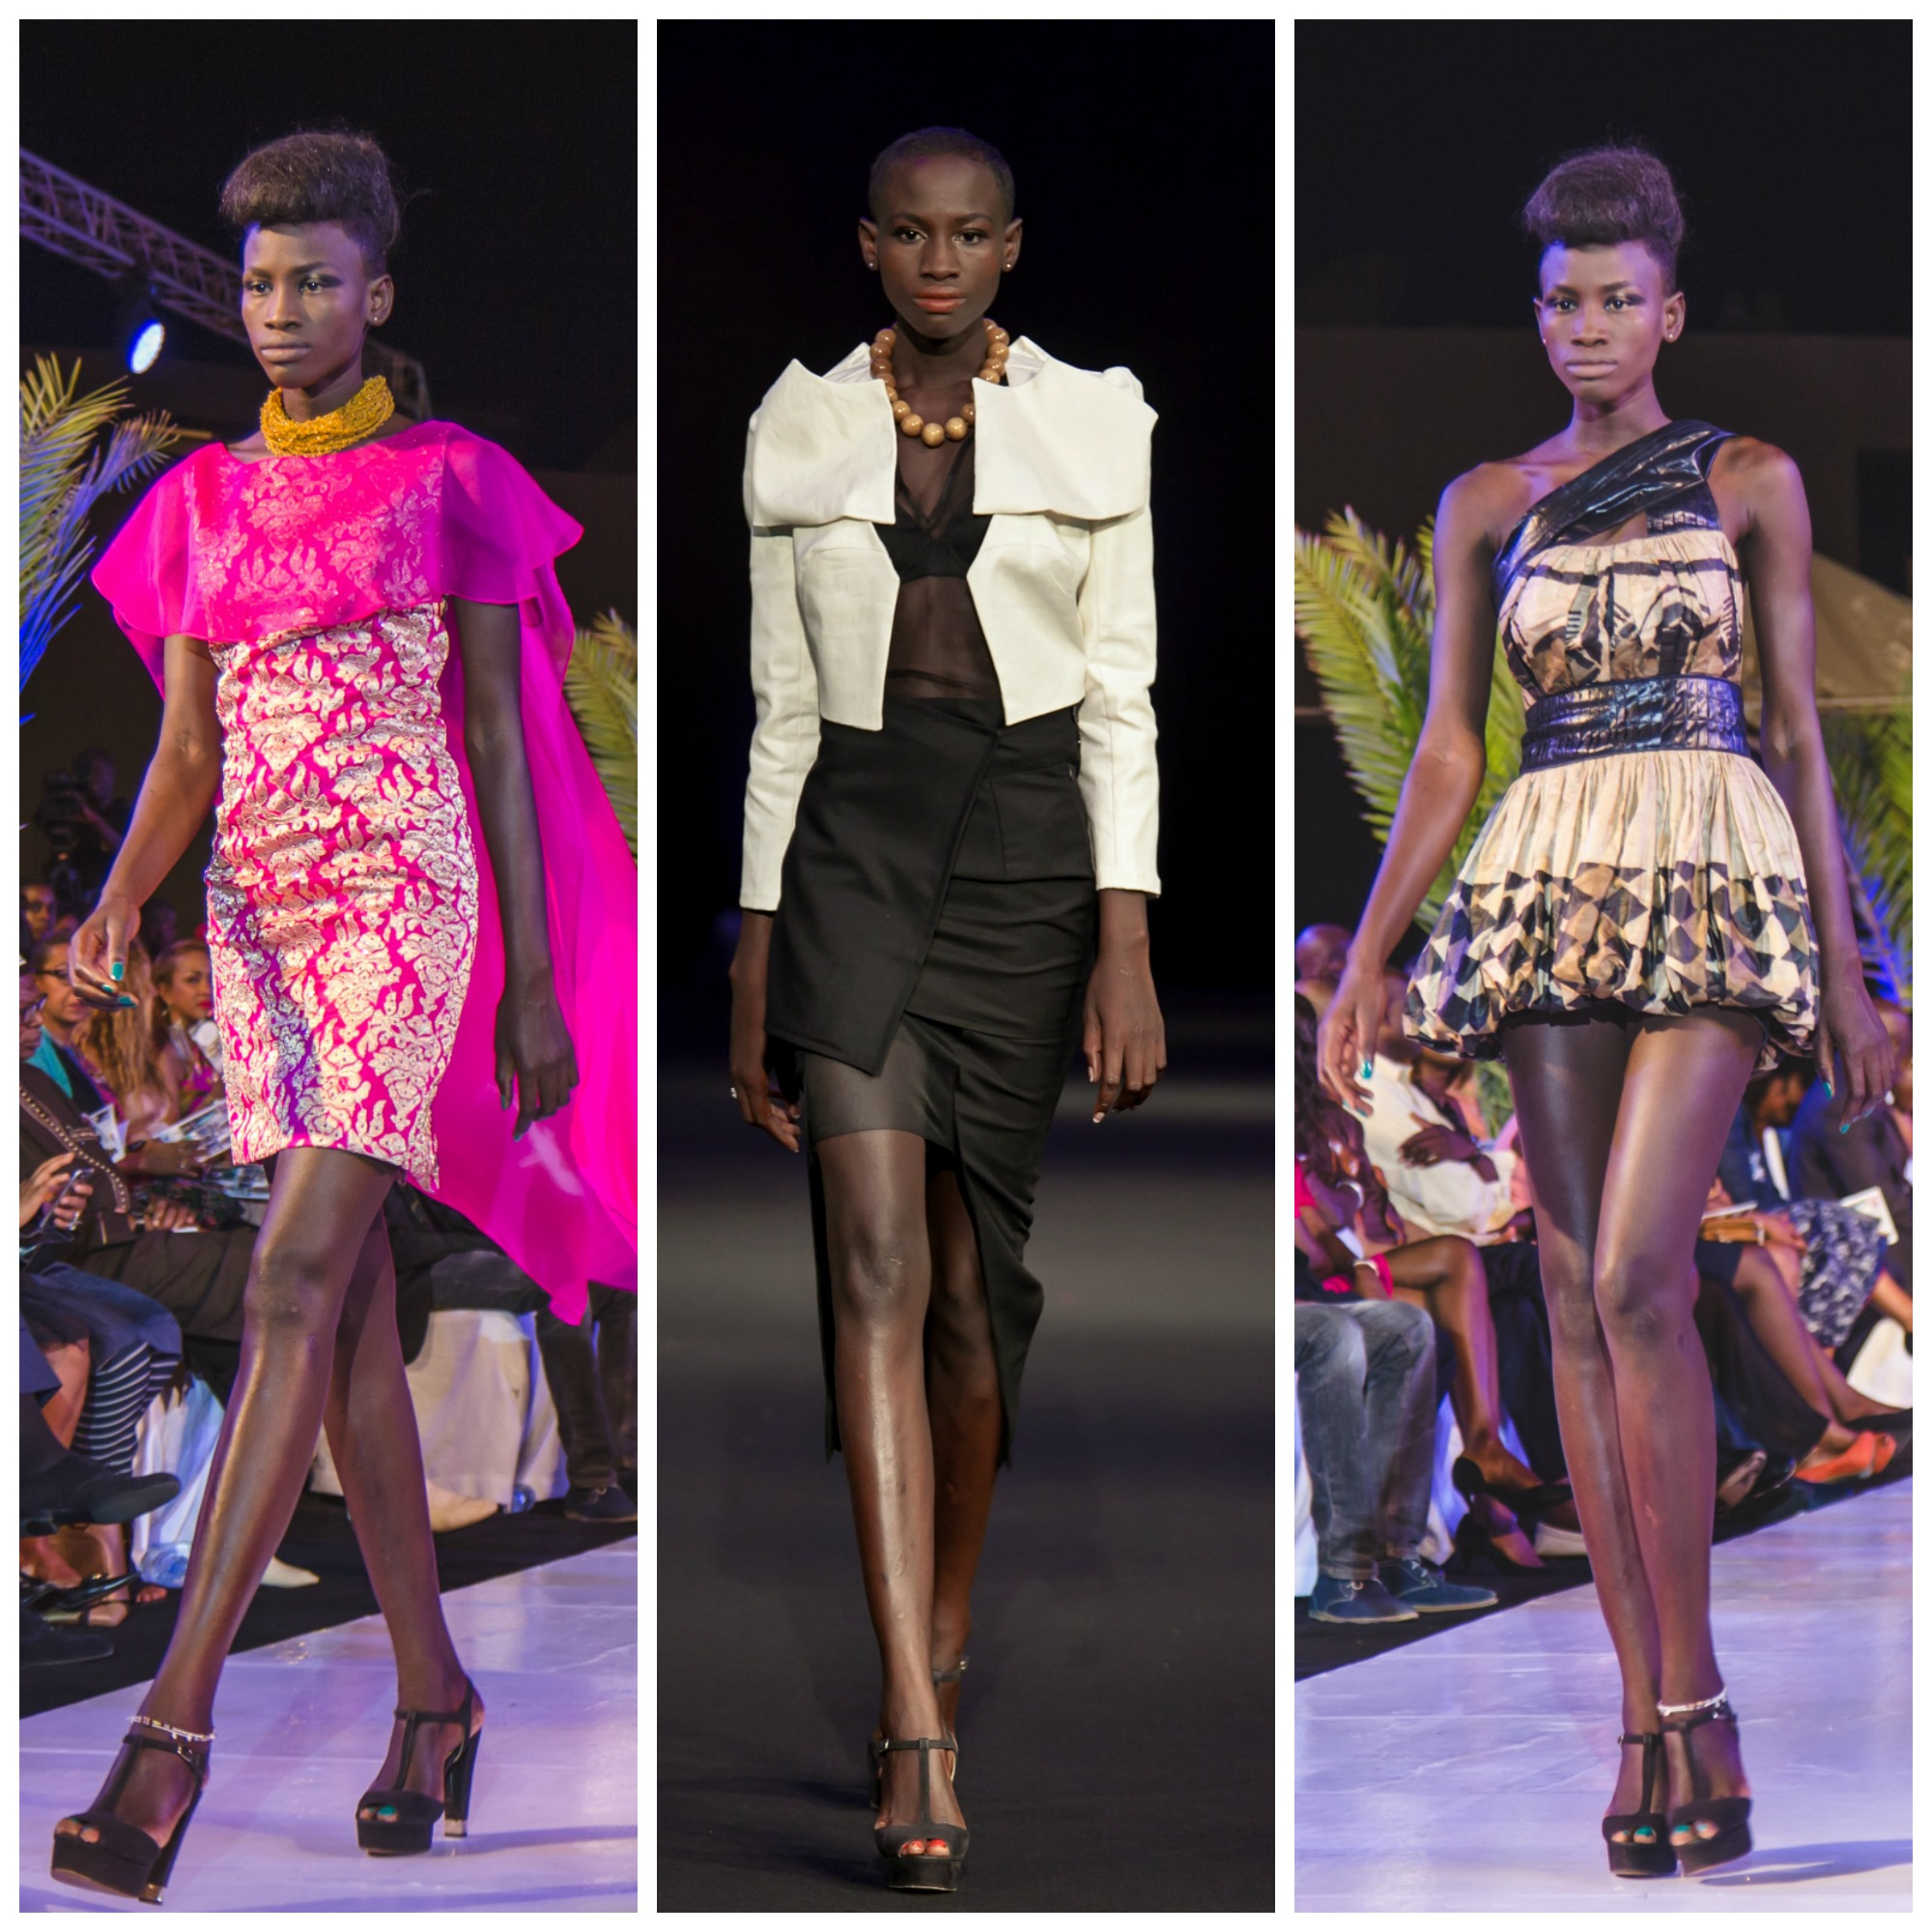 Dakar Fashion Week 2015, Black Fashion Week 2014, Dakar Fashion Week 2015